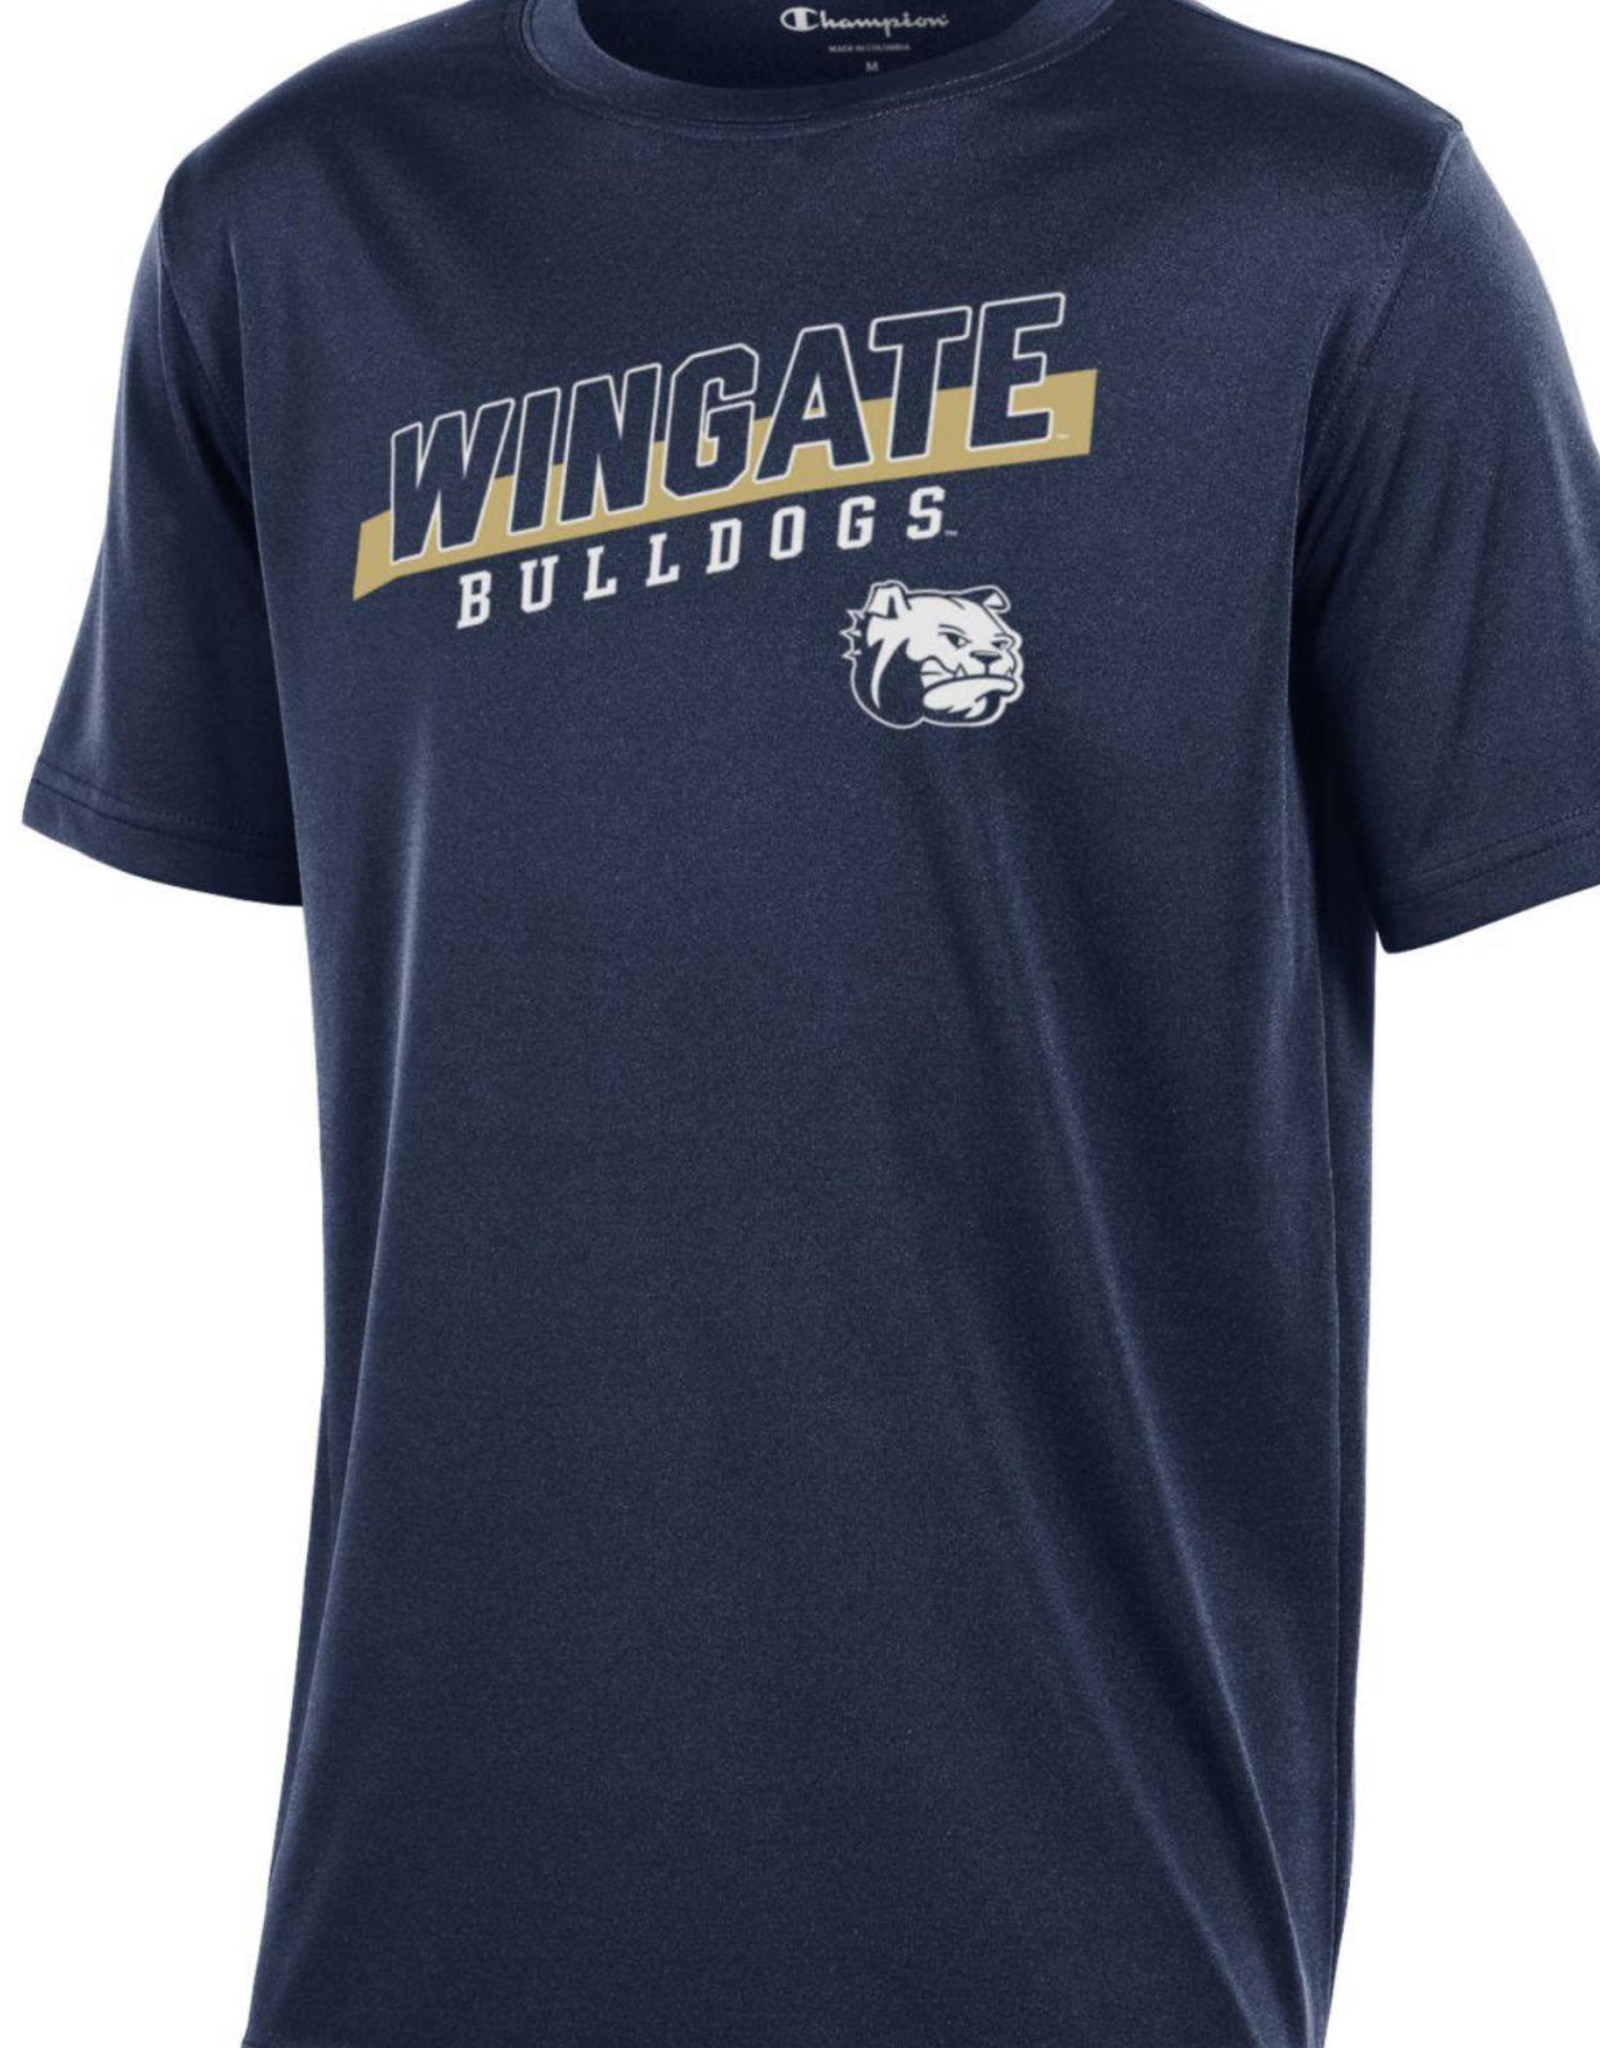 Champion Youth Navy Athletic Drifit SS Wingate Bulldogs Dog Head Tee